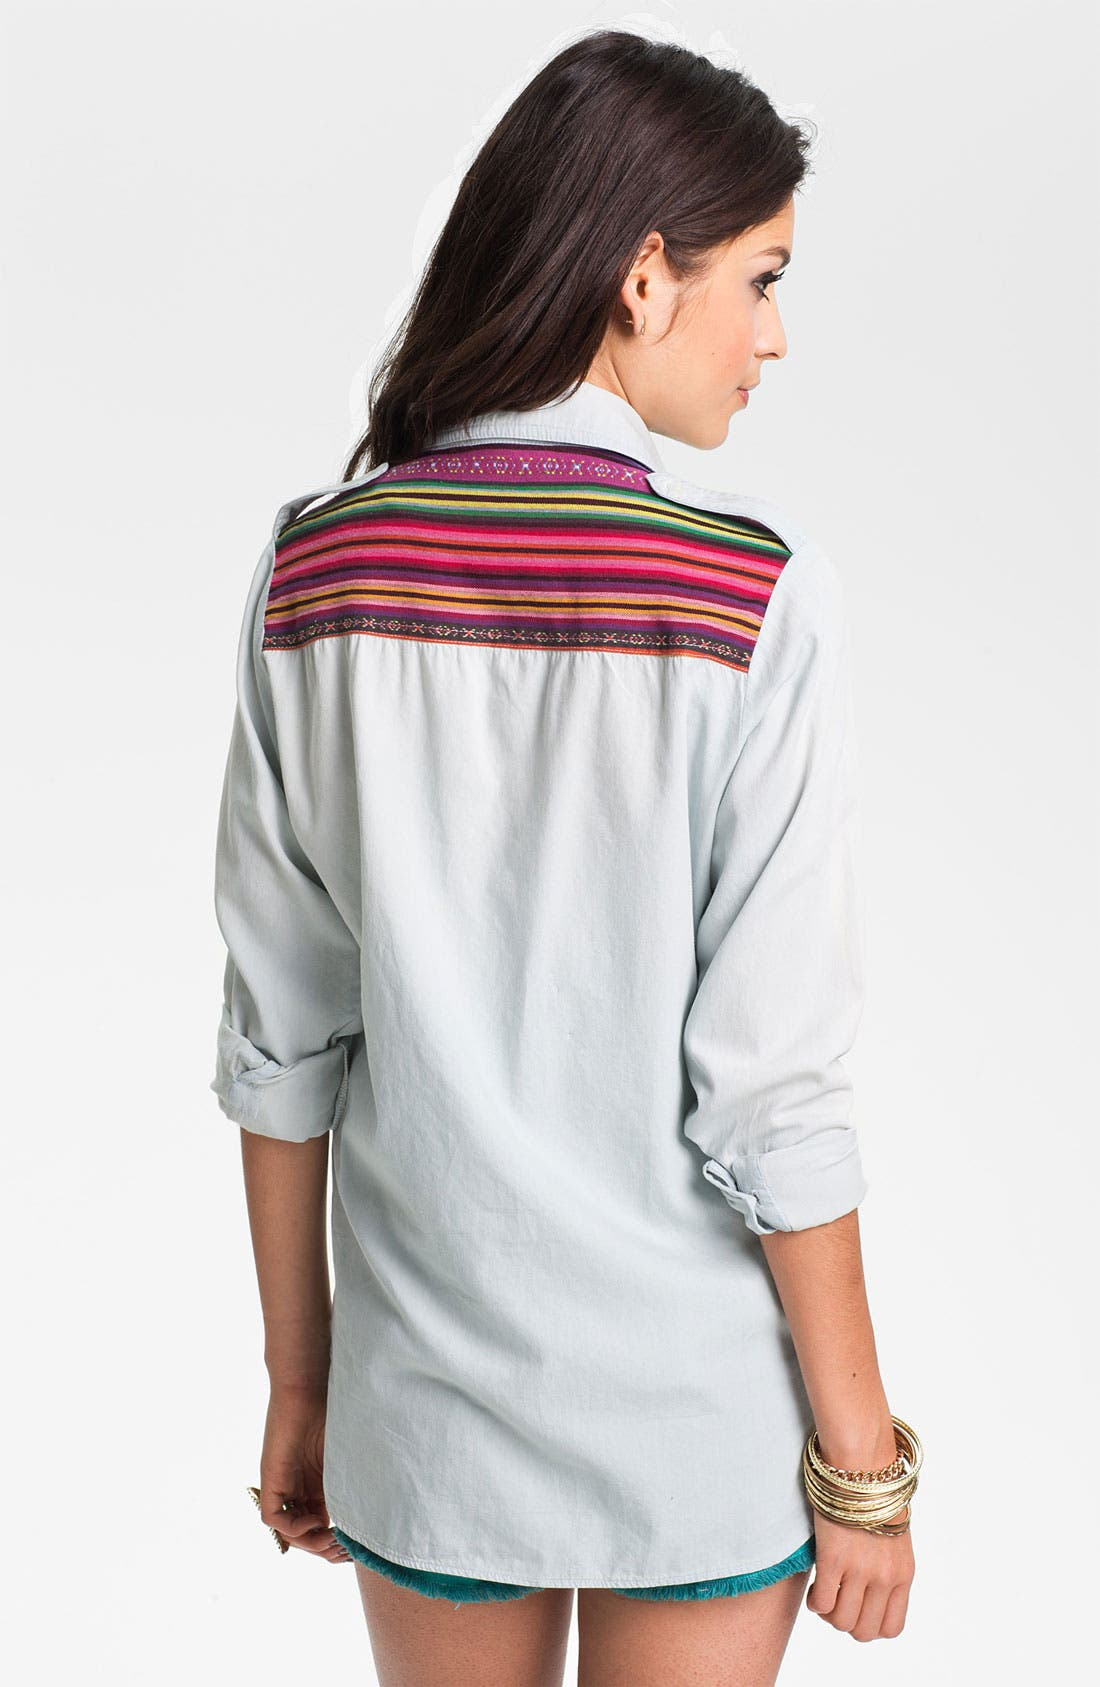 Alternate Image 1 Selected - Band of Gypsies Festival Chambray Shirt (Juniors)